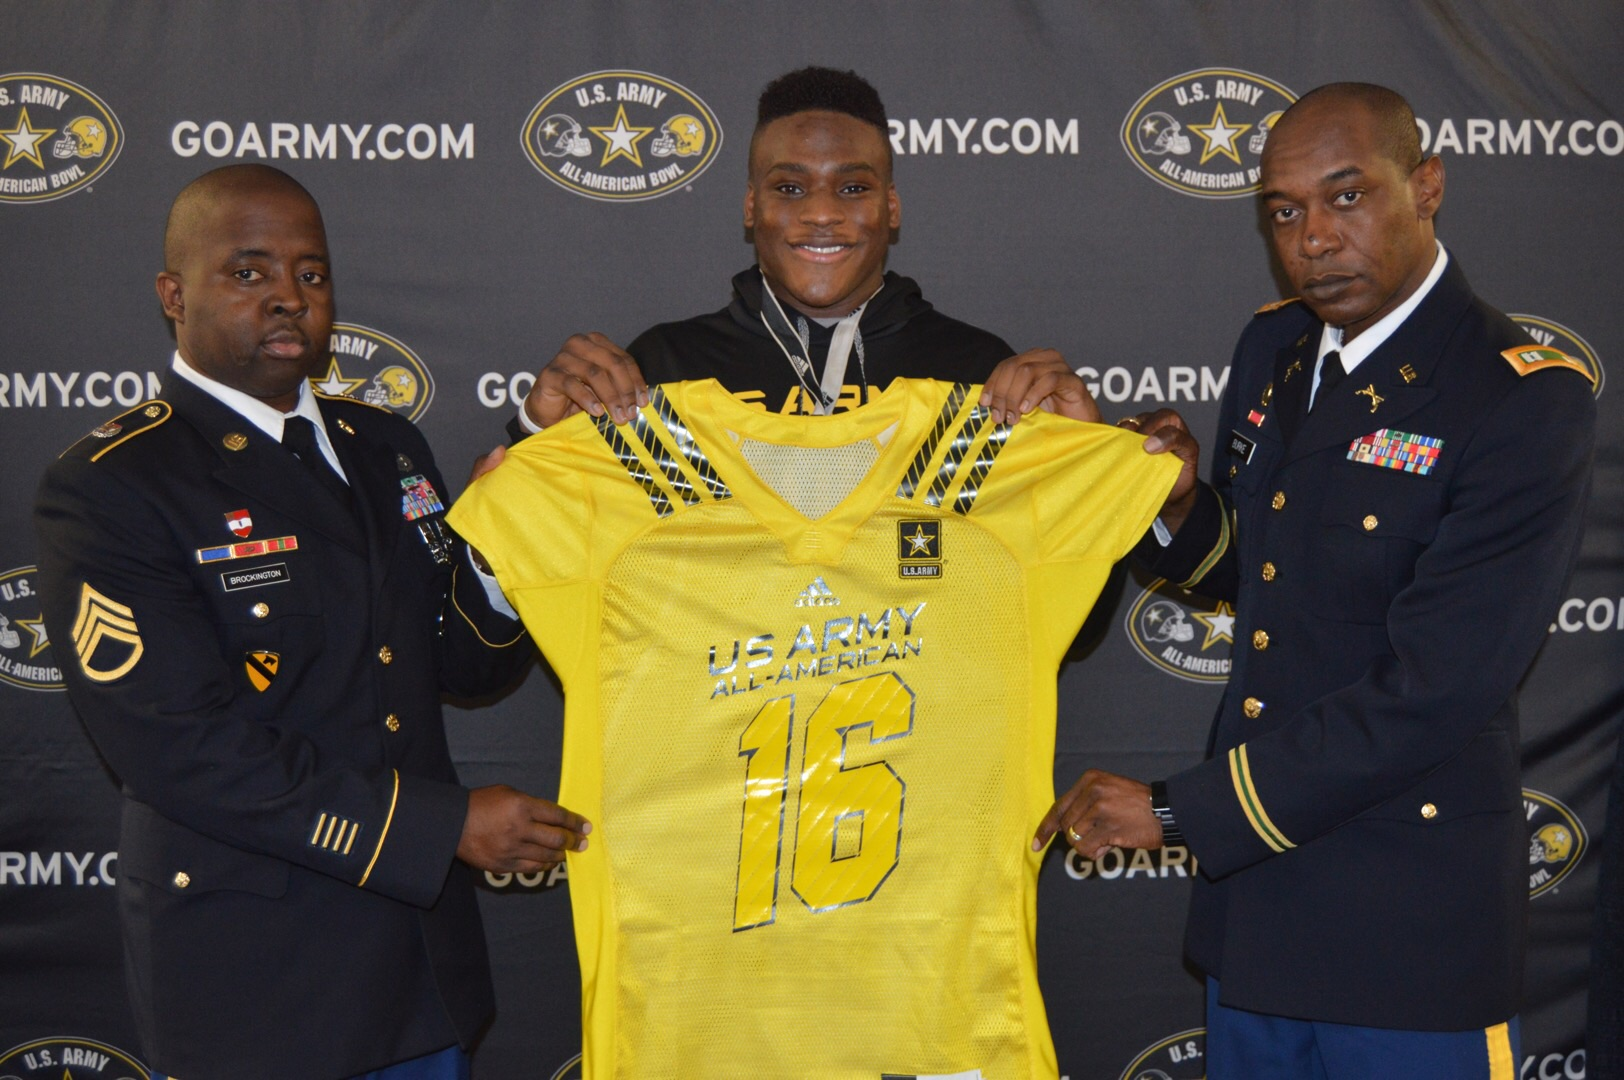 Justin Madubuike receives his Army jersey from (left) Staff Sergeant Mario Brockington and Captain Harold Burke. (Photo: U.S. Army All-American Bowl)